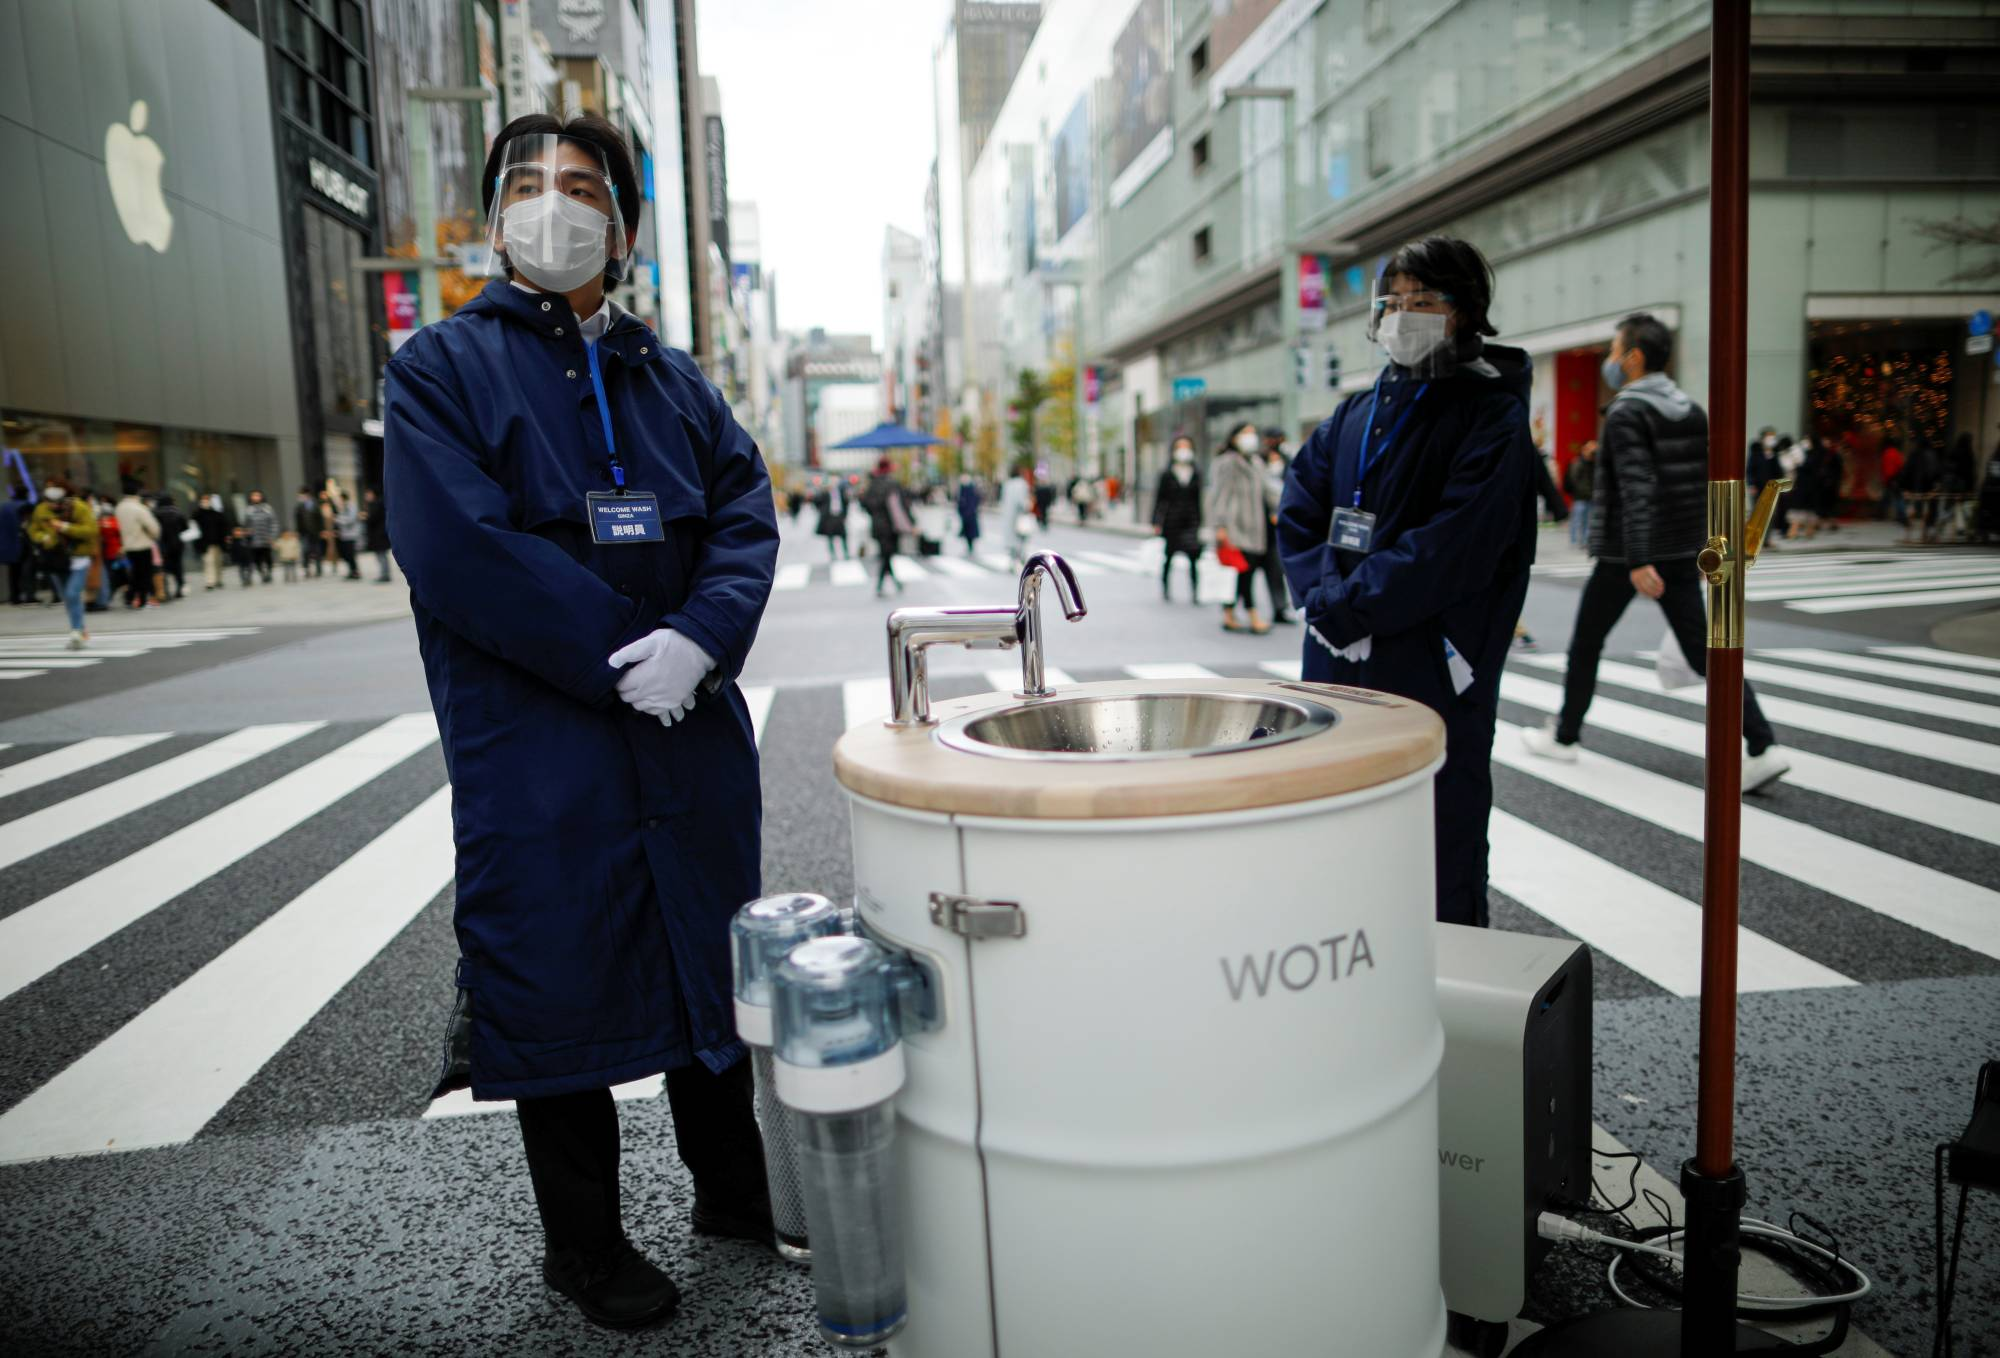 Innovative measures have been implemented across East Asia in a bid to beat the pandemic, with Tokyo's Ginza shopping district recently hosting a series of hand-washing and phone sanitizing stations. | REUTERS